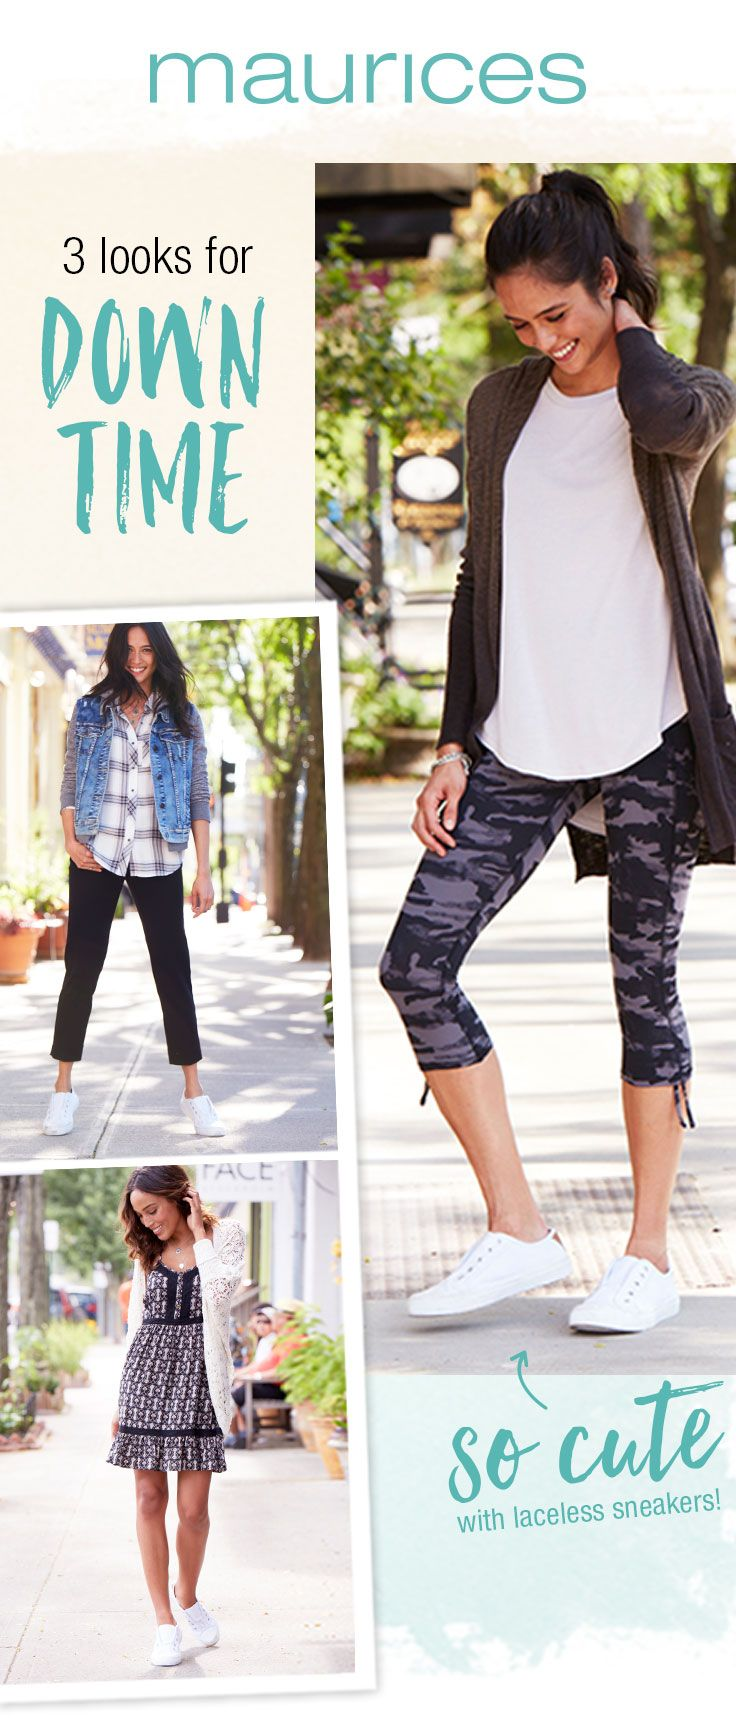 August outfits should be easy! We've pulled 3 looks for downtime. Pair your white sneakers with a dress for a casual ready for anything, daytime look. Throw them on with your fave active leggings to go beyond the gym. Or, add a pair of white sneakers to your Saturday #ootd! Shop these looks now on maurices.com!